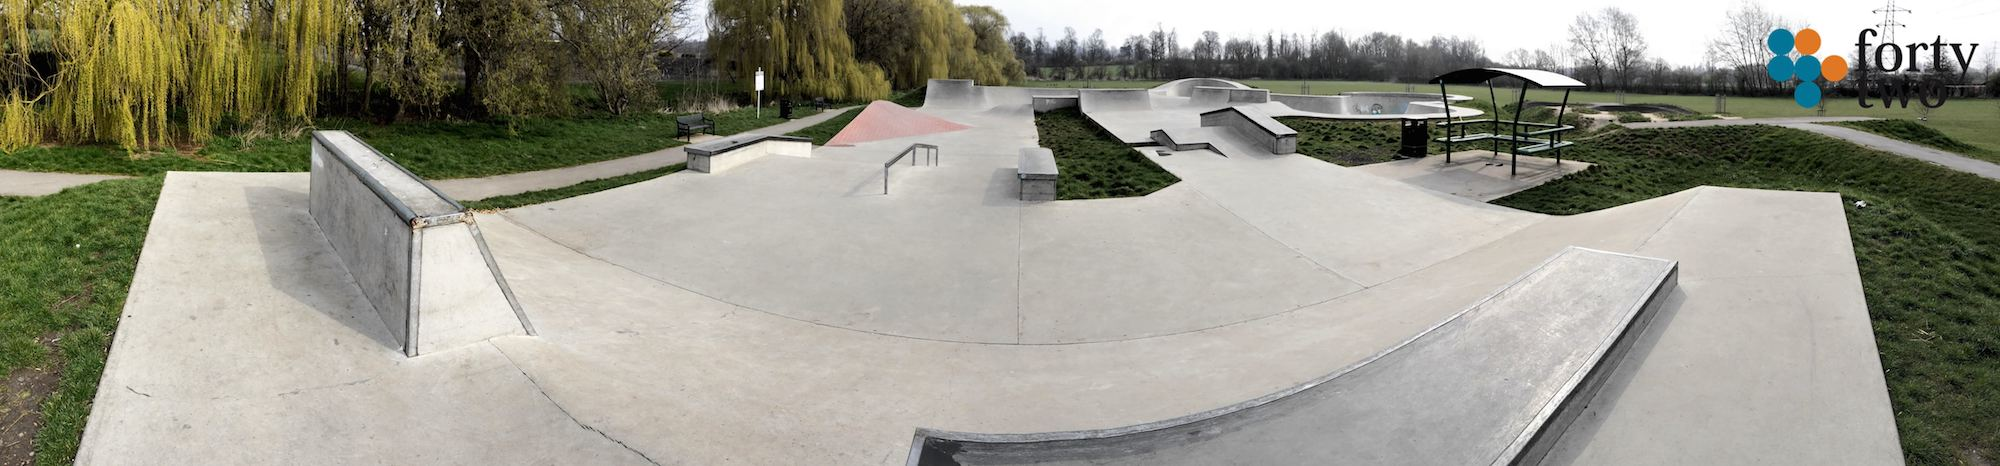 Panoramic view of Nottingham's Clifton skatepark street section.